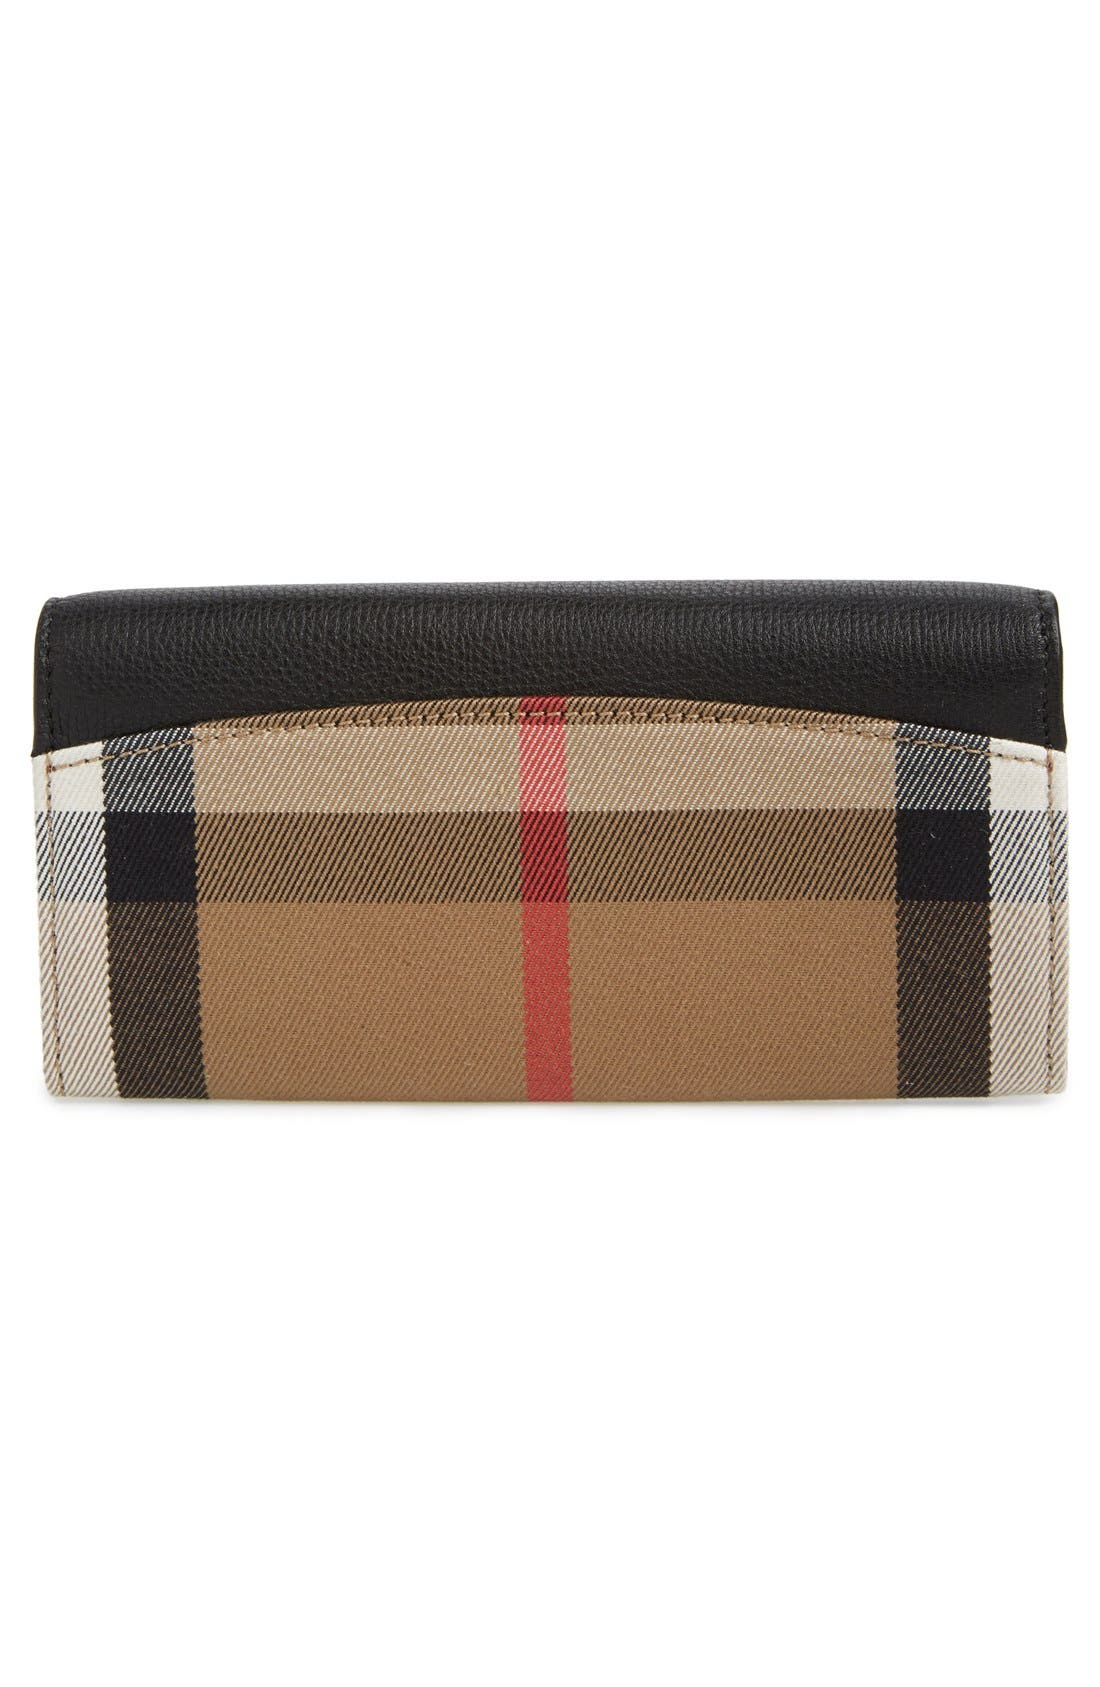 'Porter' Continental Wallet,                             Alternate thumbnail 3, color,                             001